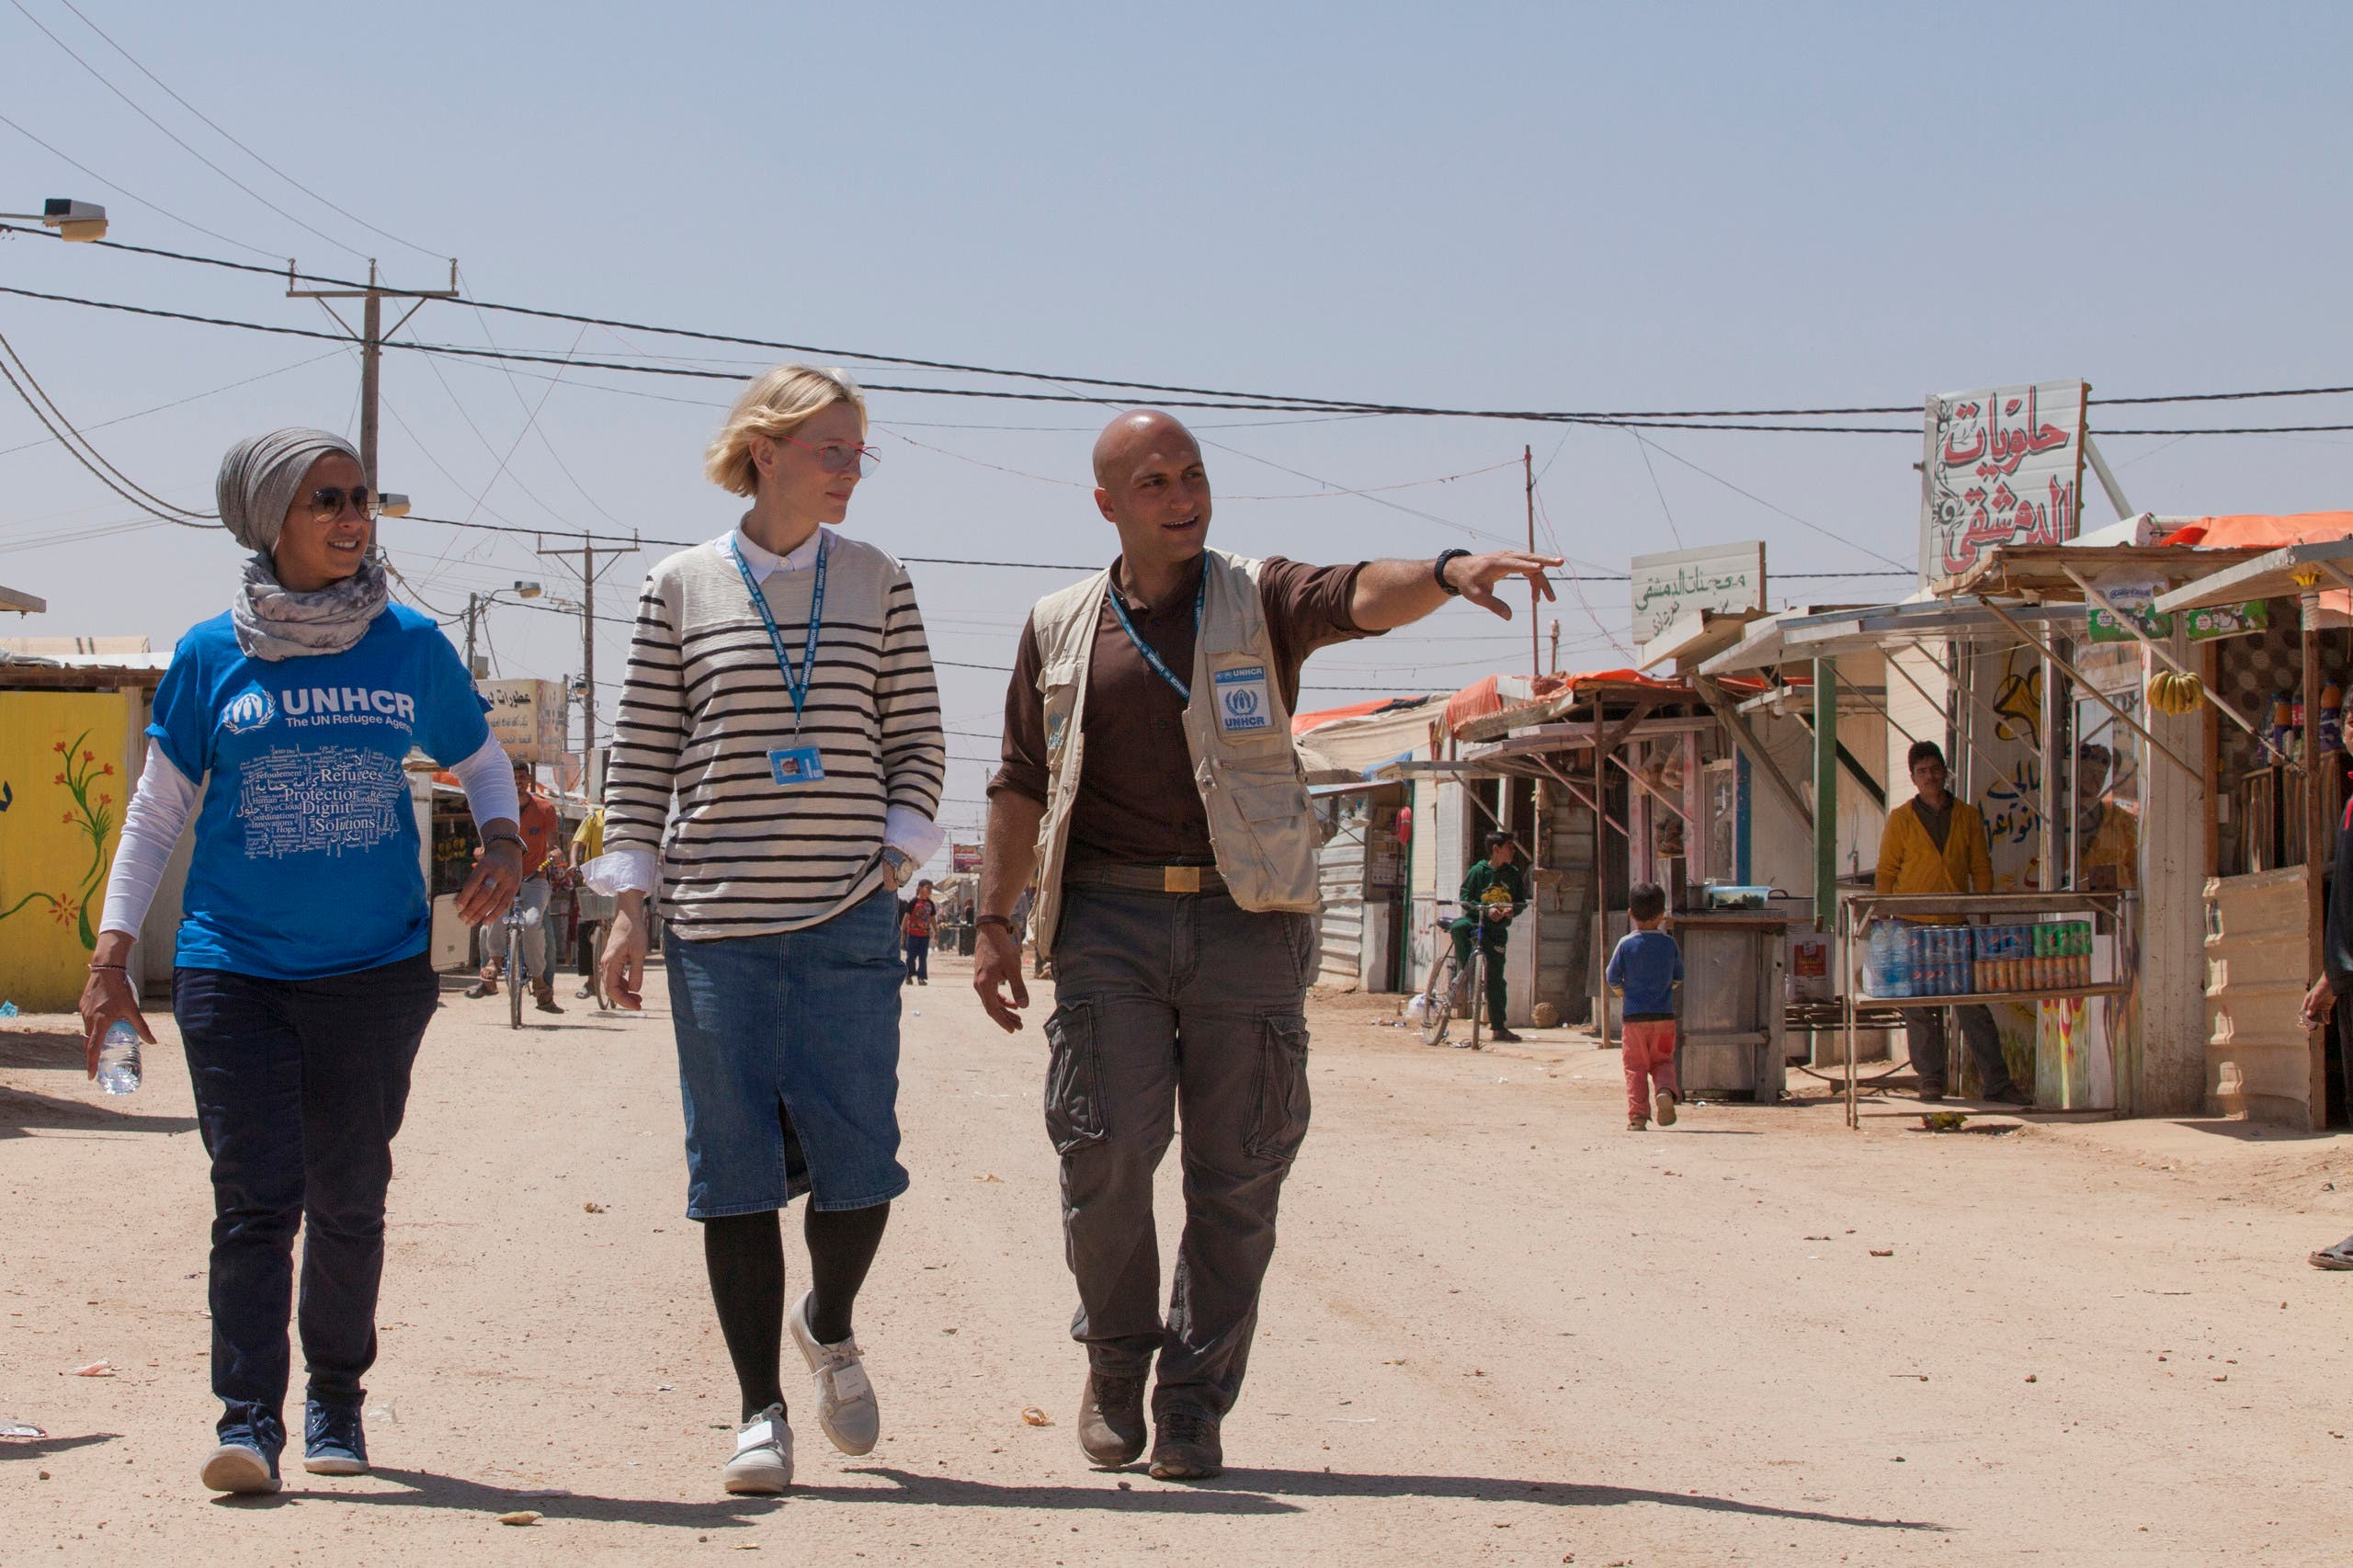 In this undated handout photo released by UNHCR on Monday, Sept 12 2016, UNHCR goodwill ambassador Cate Blanchett, center, and camp manager Hovig Etyemezian, right, walk at Zaatari refugee camp as they visit Syrian refugees in Jordan. ap